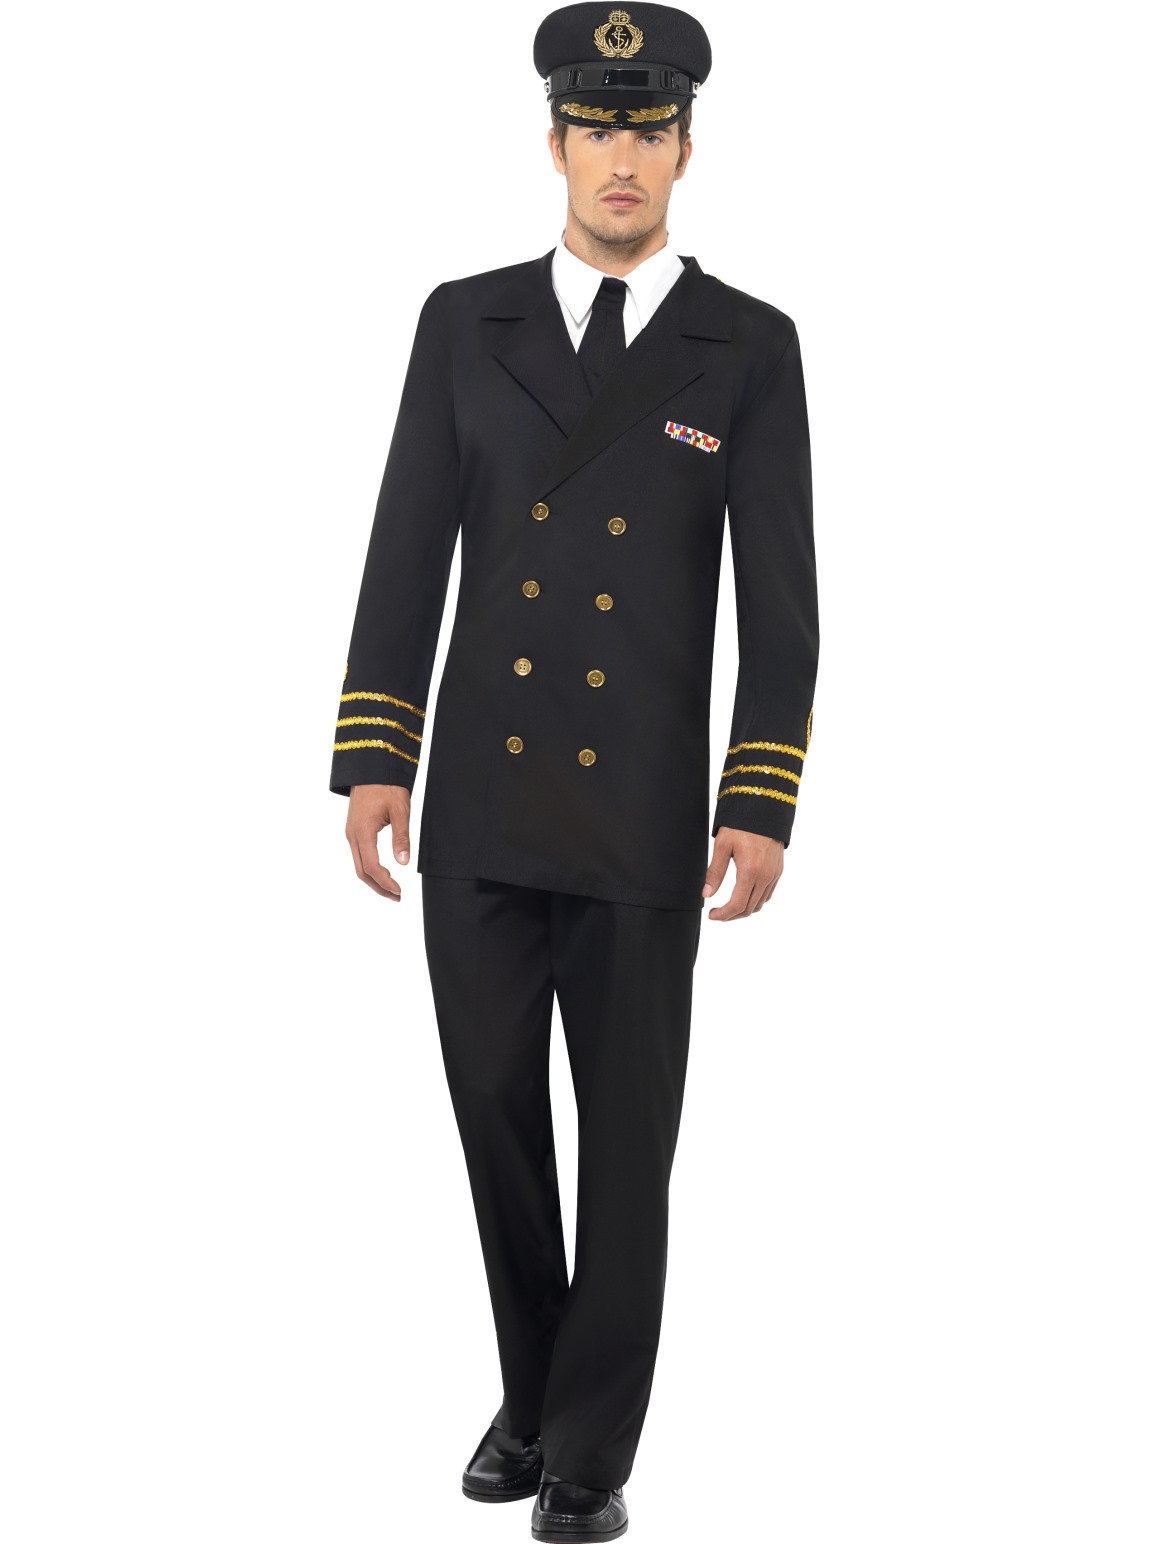 Military Naval Sea Captain Officer Navy Adults Mens Fancy Dress Costume